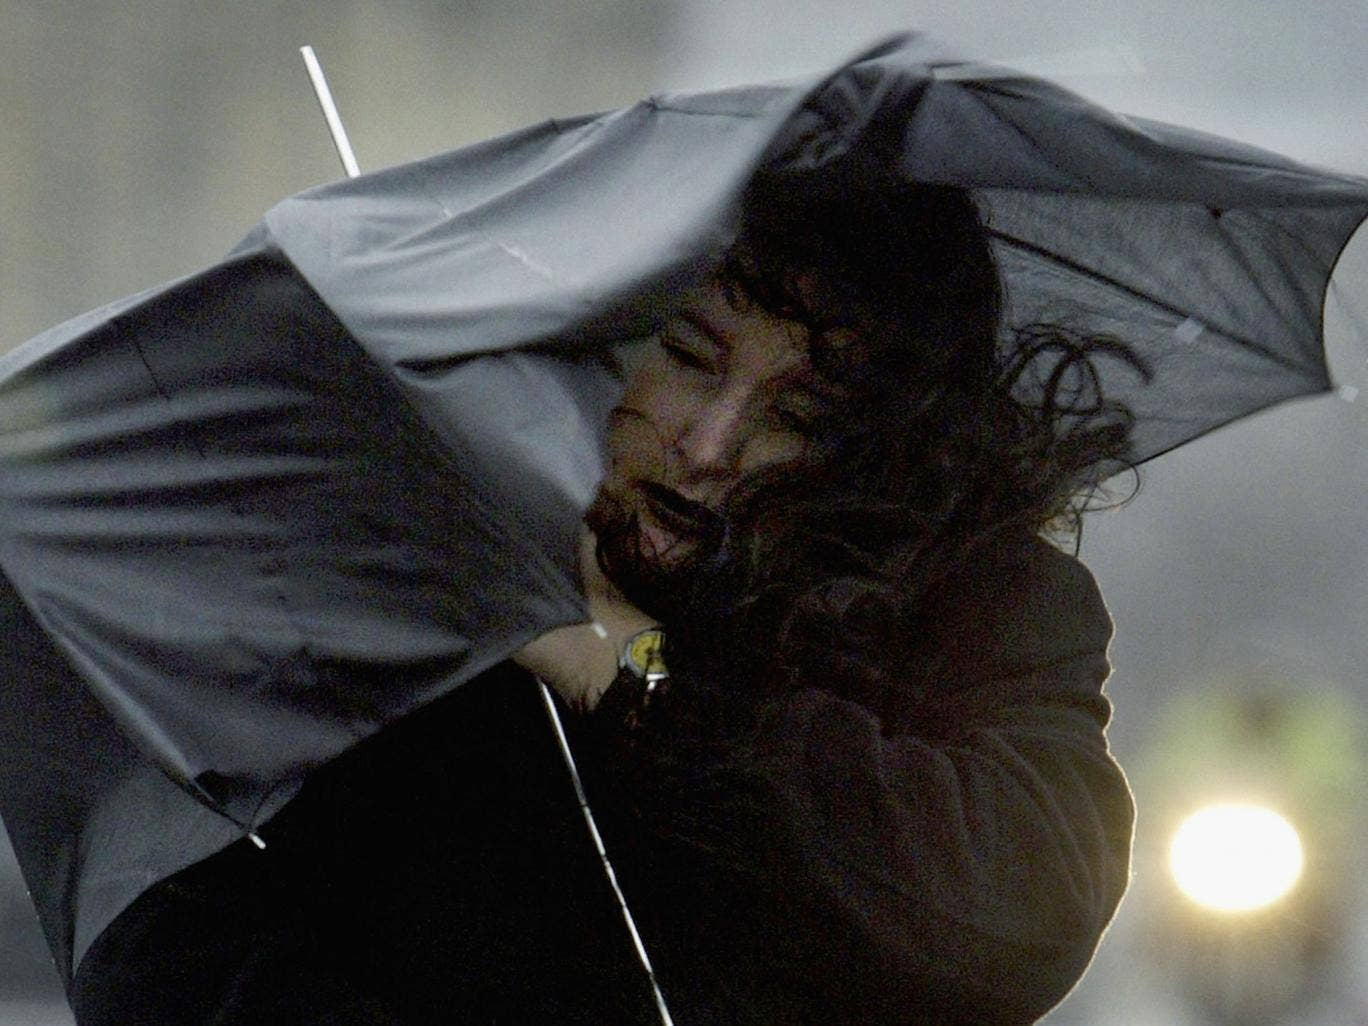 Hang on to your brolly - strong winds are forecast for much of England and Wales